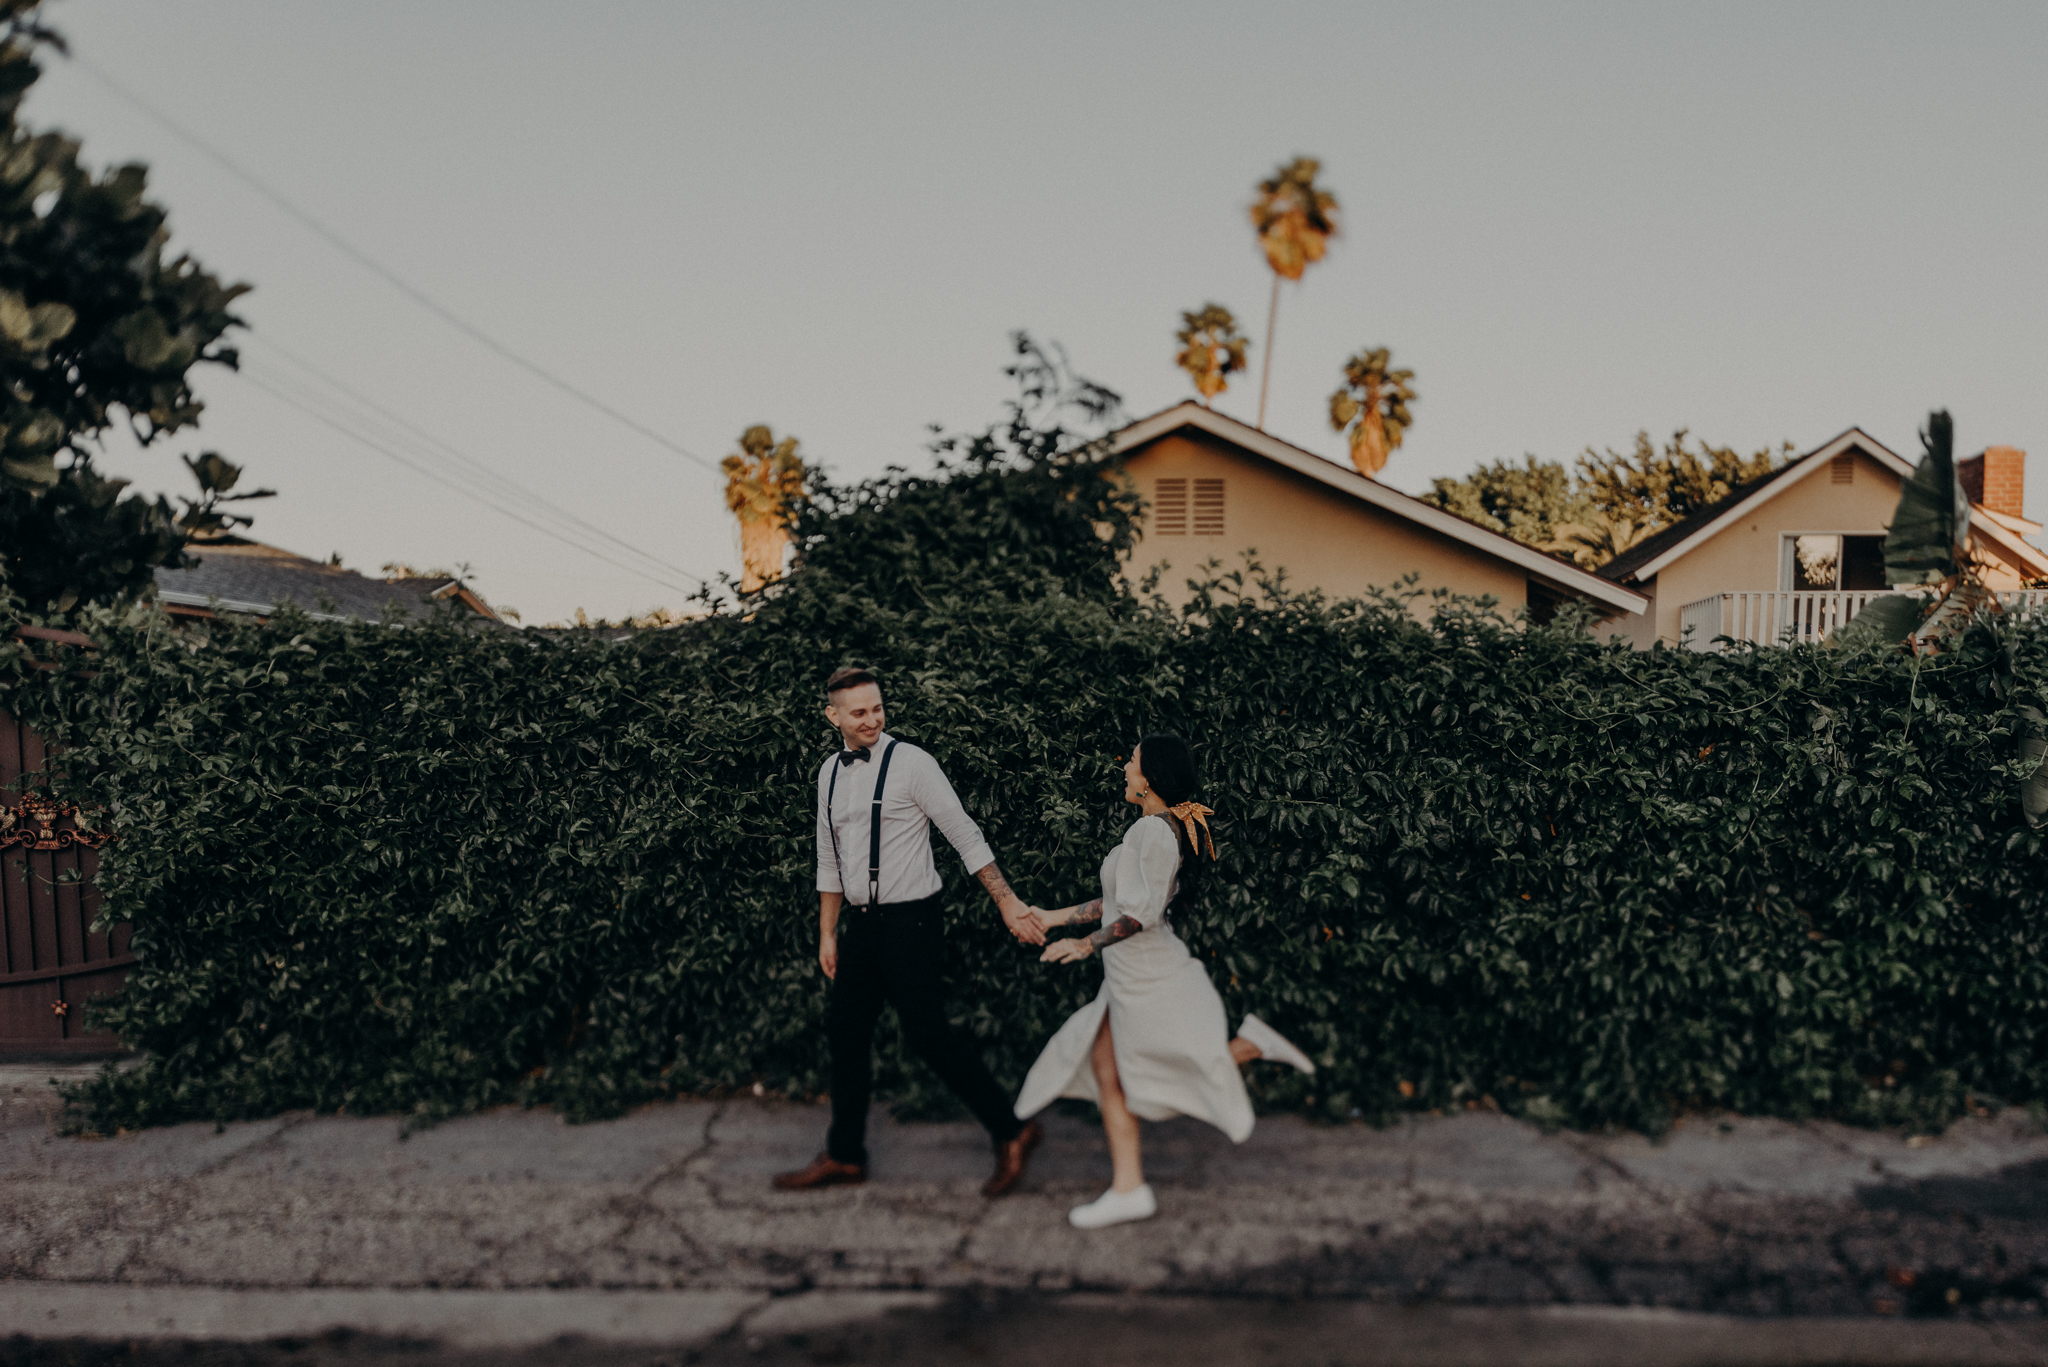 Wedding Photographer in LA - Los Angeles Wedding Photos - Tattoo Shop Engagement Session - IsaiahAndTaylor.com-036.jpg